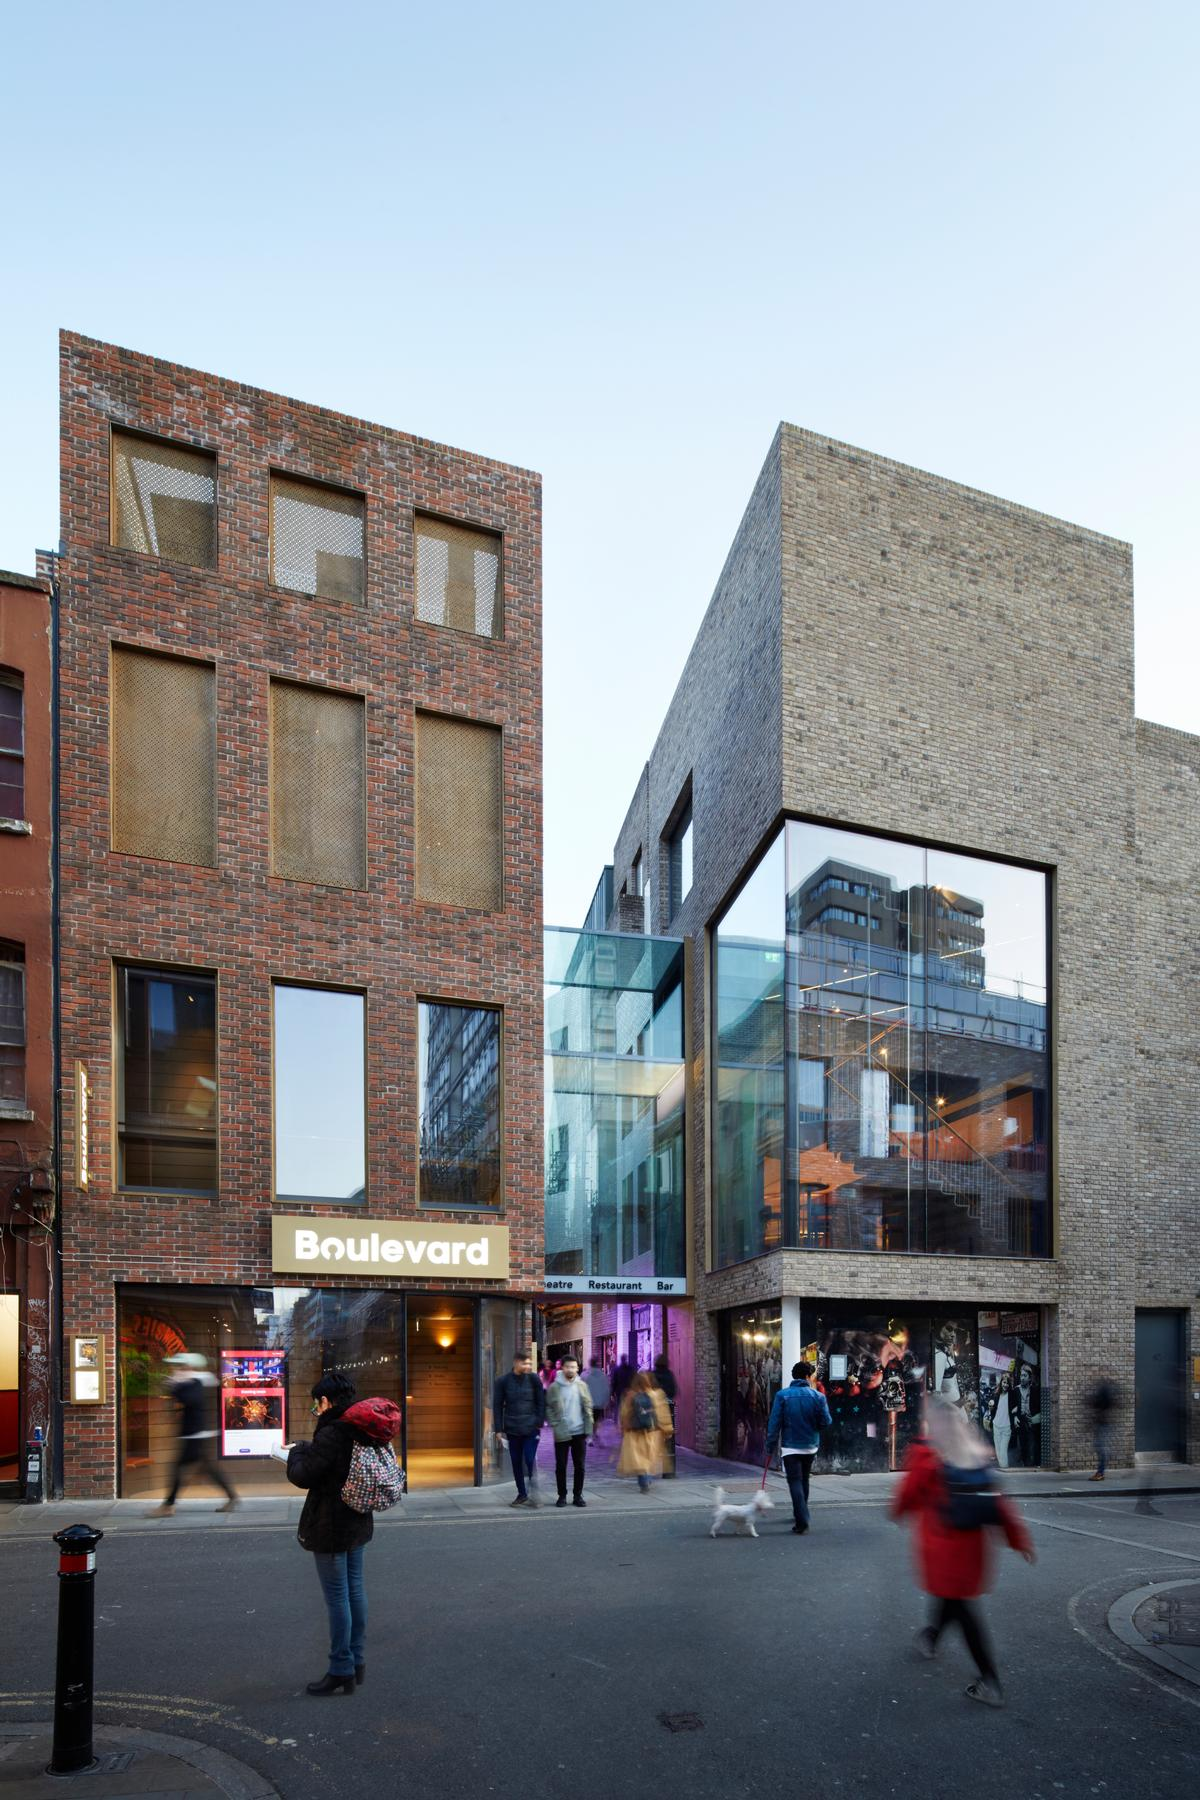 Façades of interlocking bricks clad the theatre buildings / SODA Studio